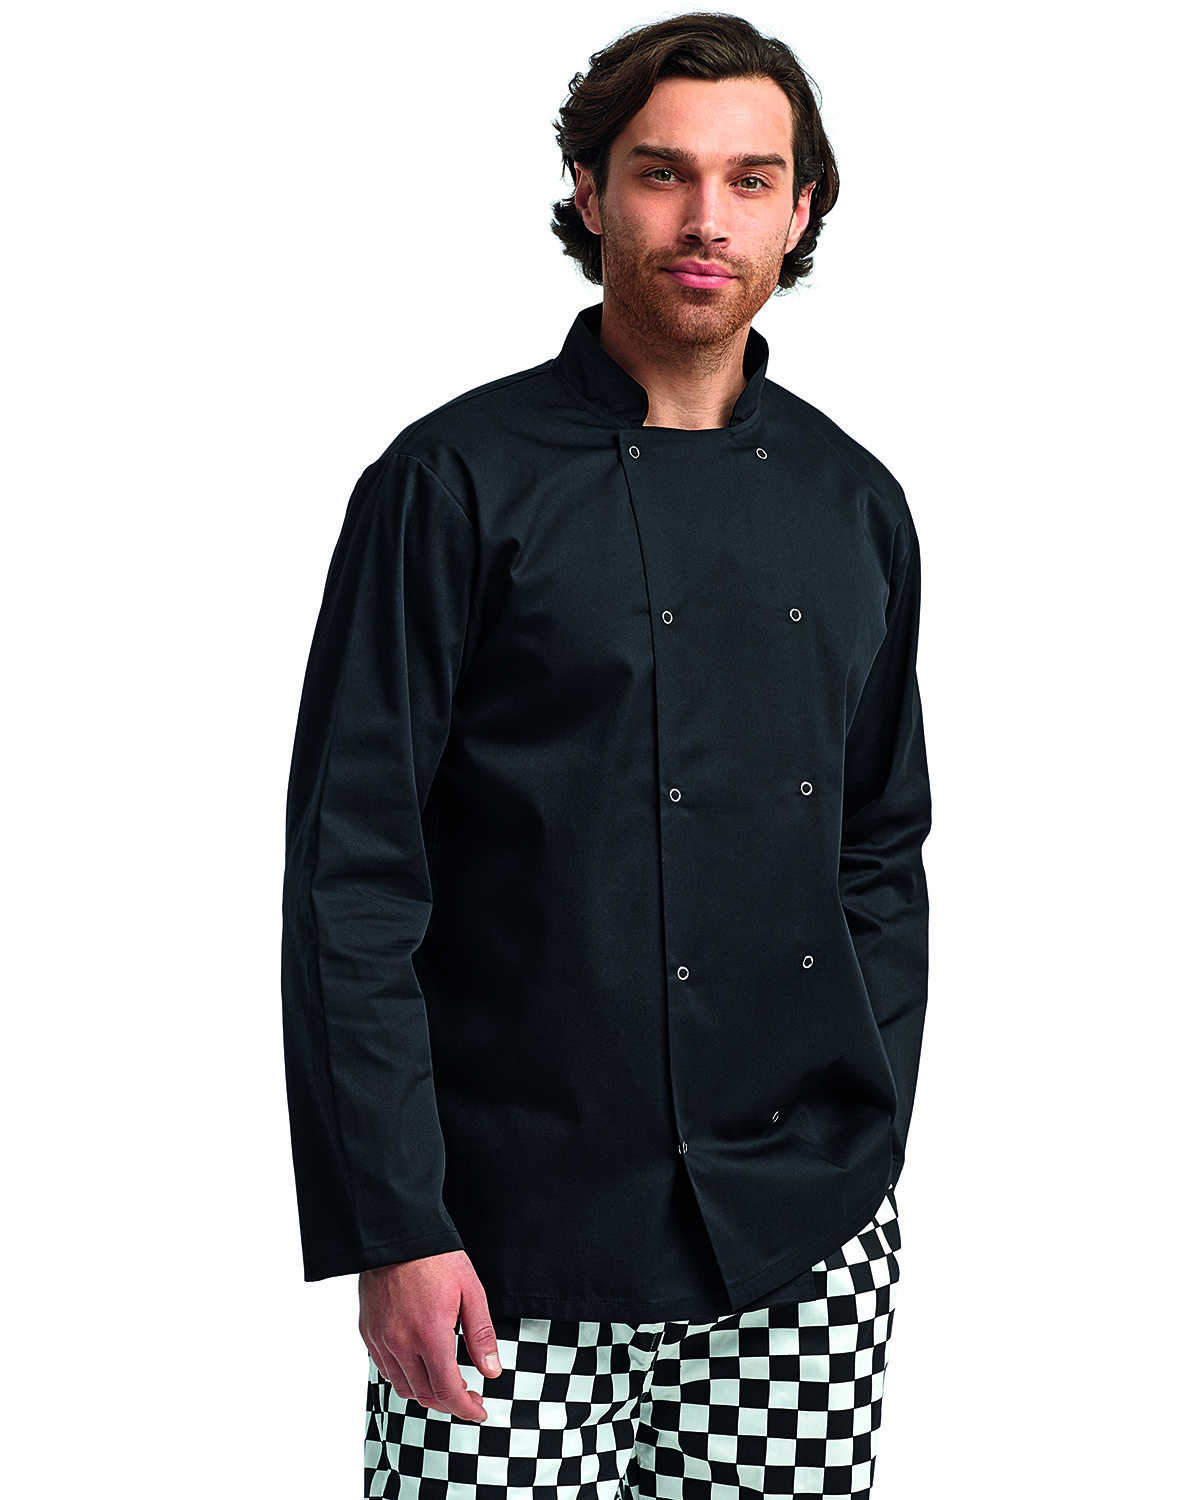 Artisan Collection by Reprime Unisex Studded Front Long-Sleeve Chef's Coat BLACK